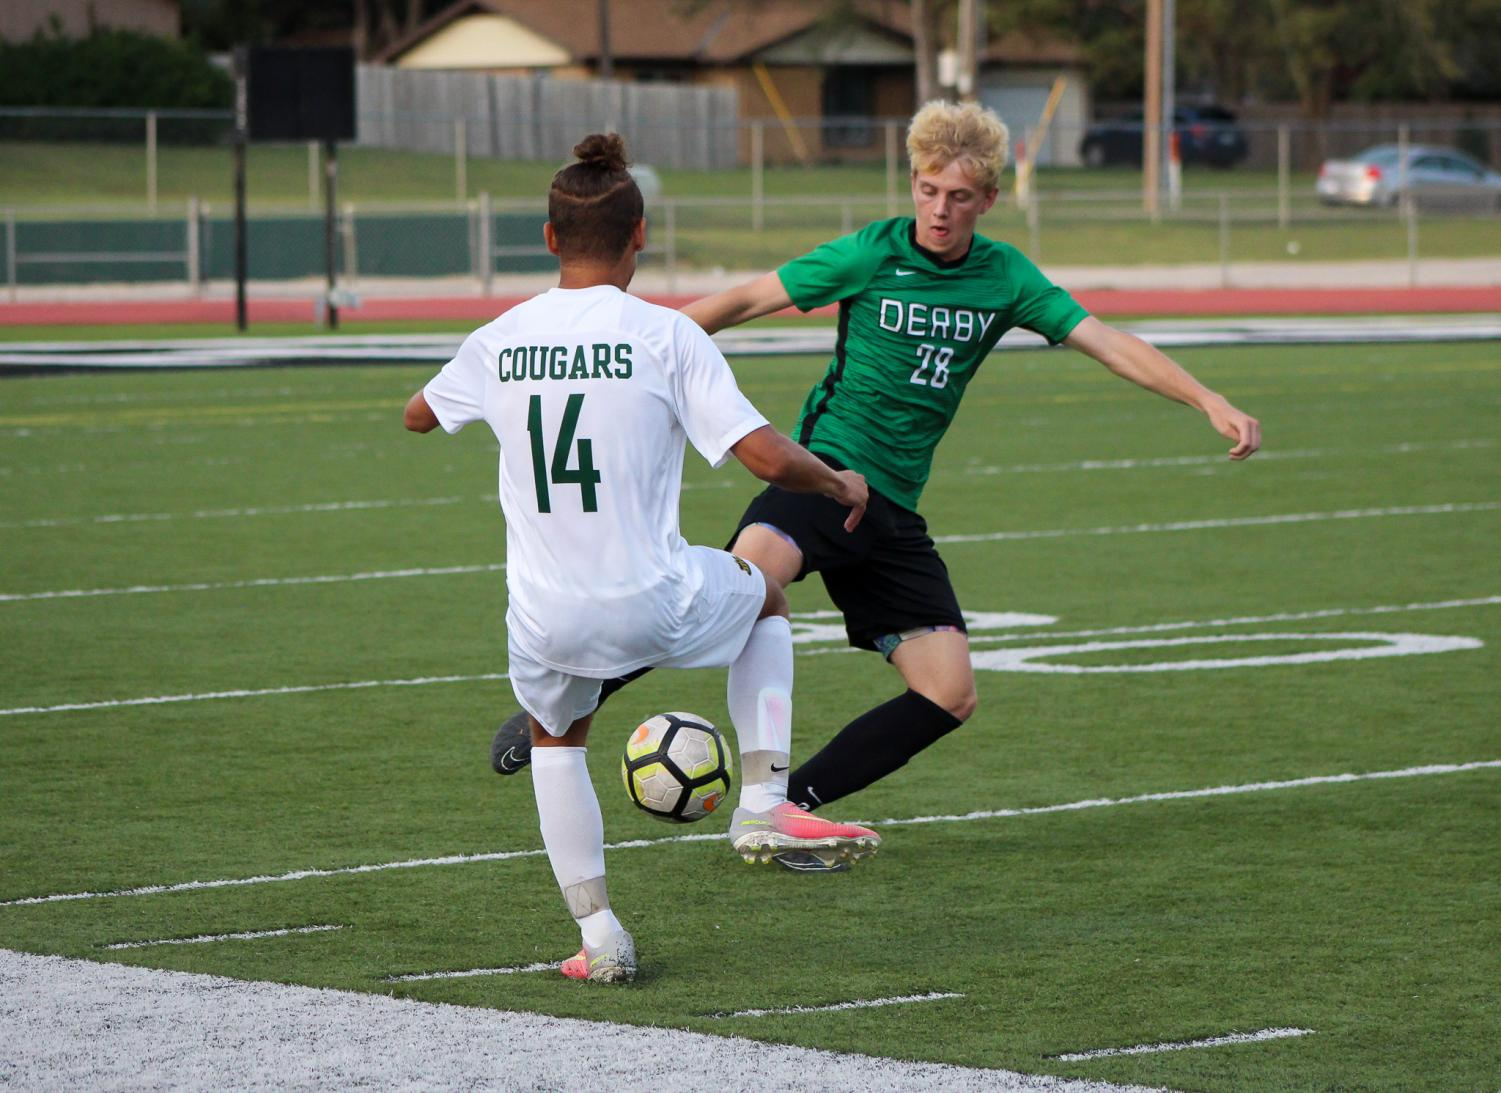 Junior Matthew Young kicks the ball away from his  opponent.